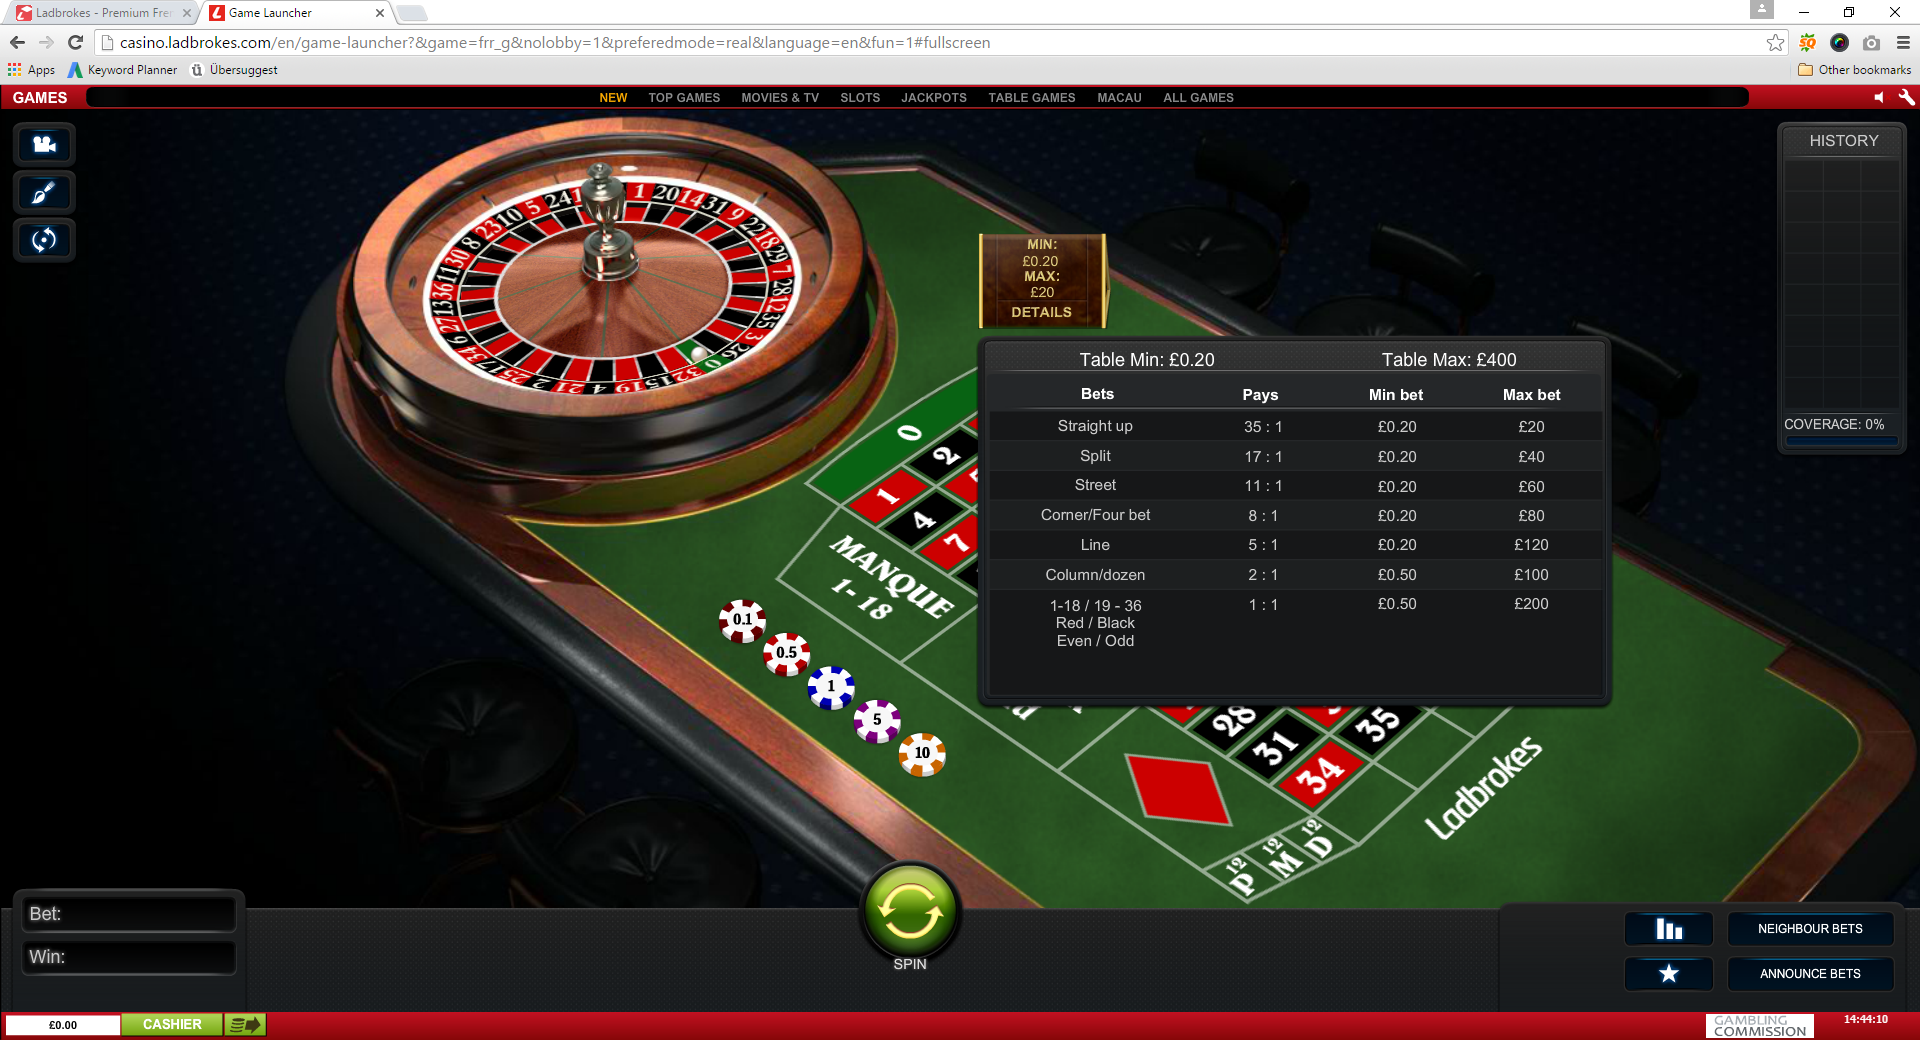 Sites de poker pago online